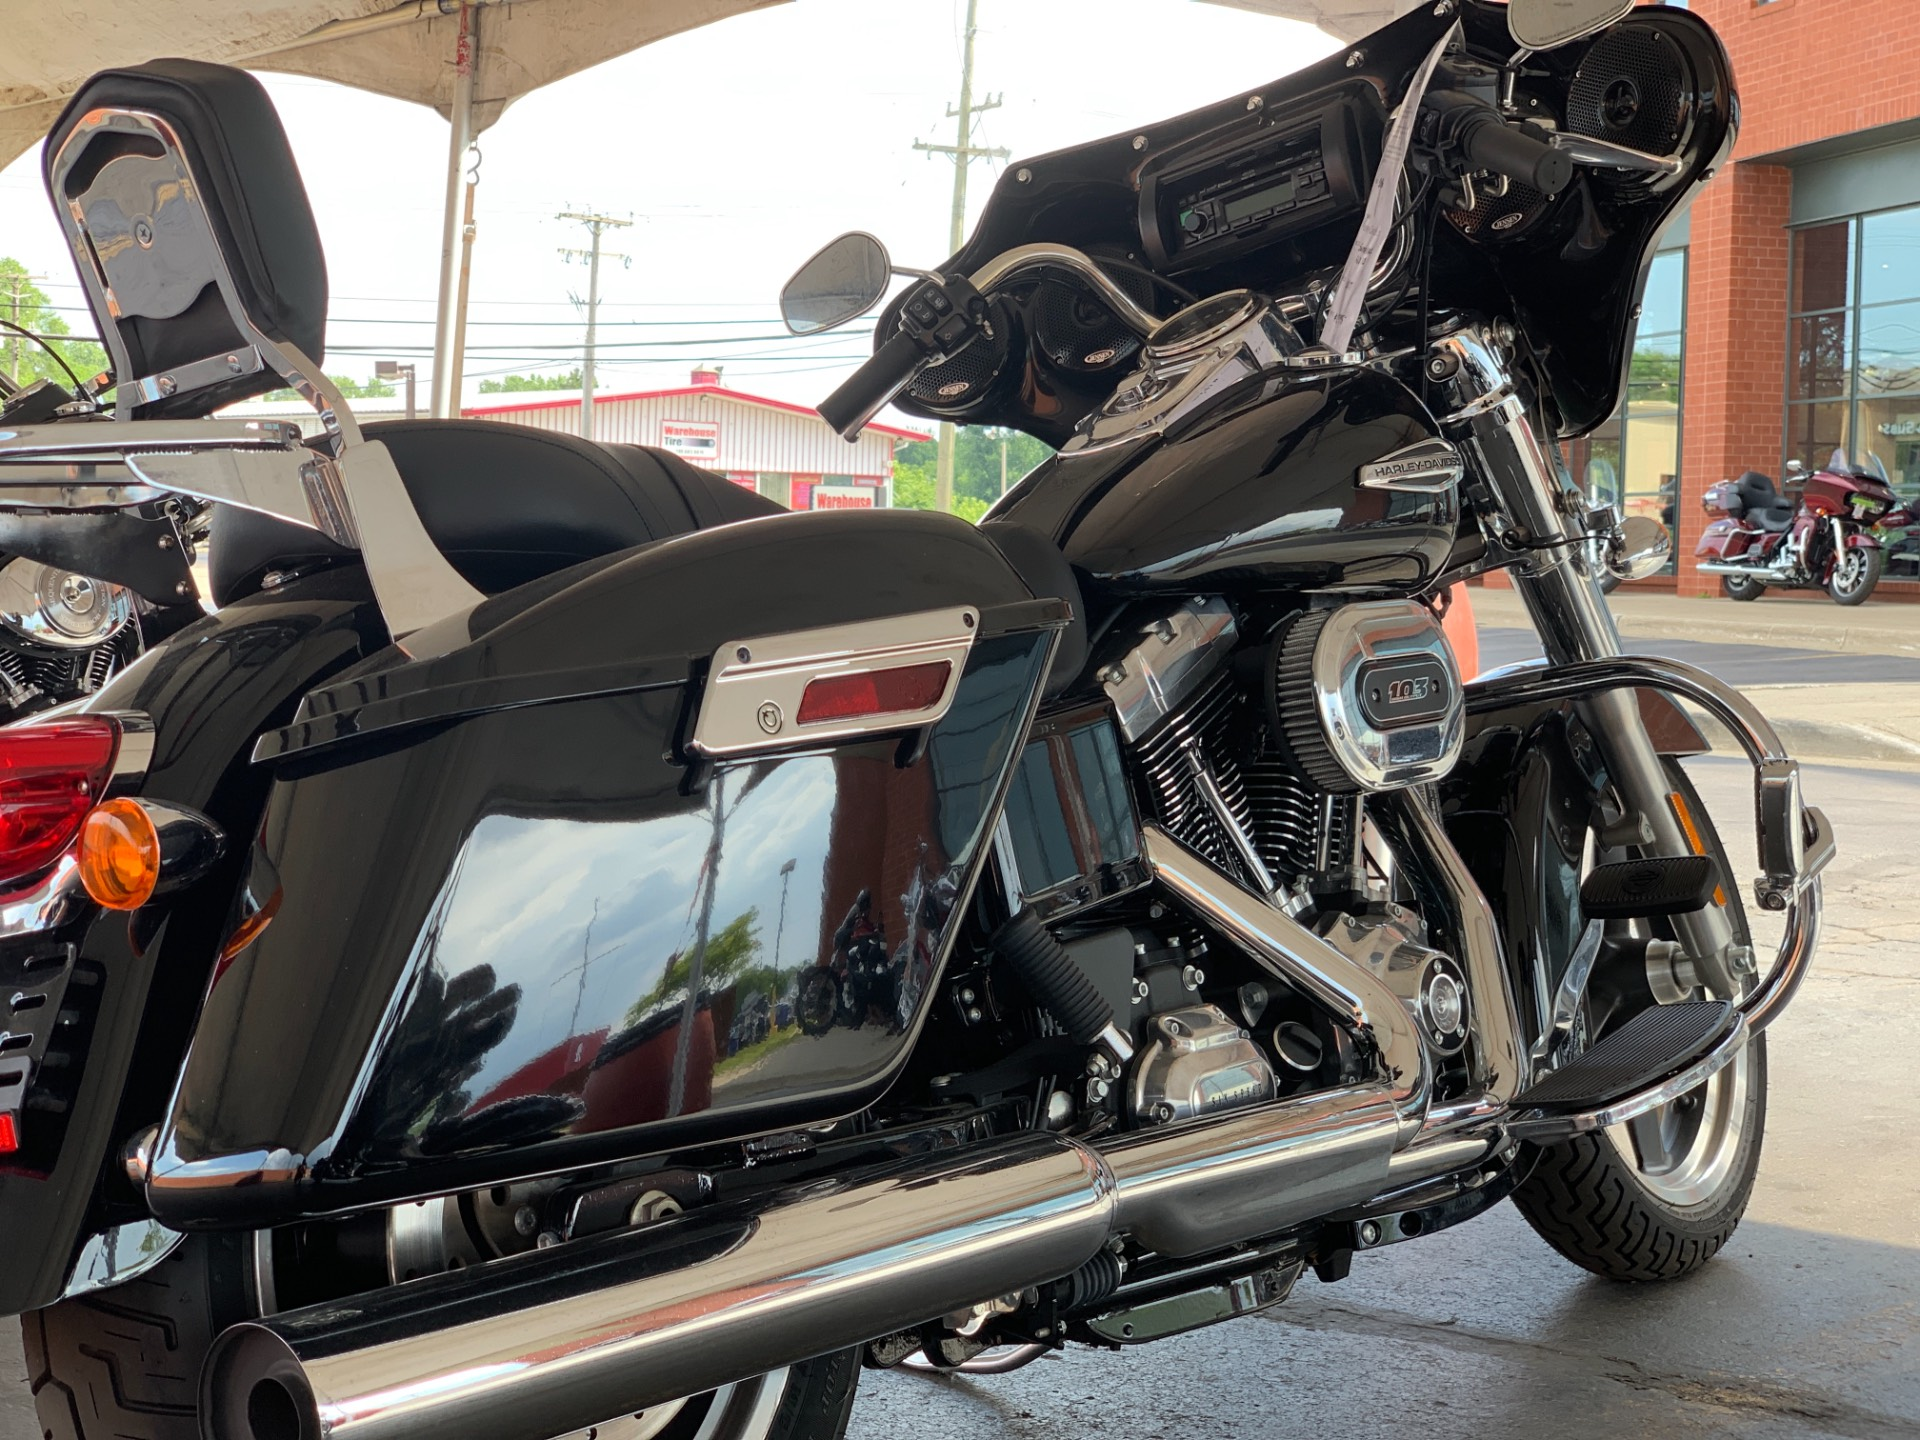 2016 Harley-Davidson FLD103 in Waterford, Michigan - Photo 3